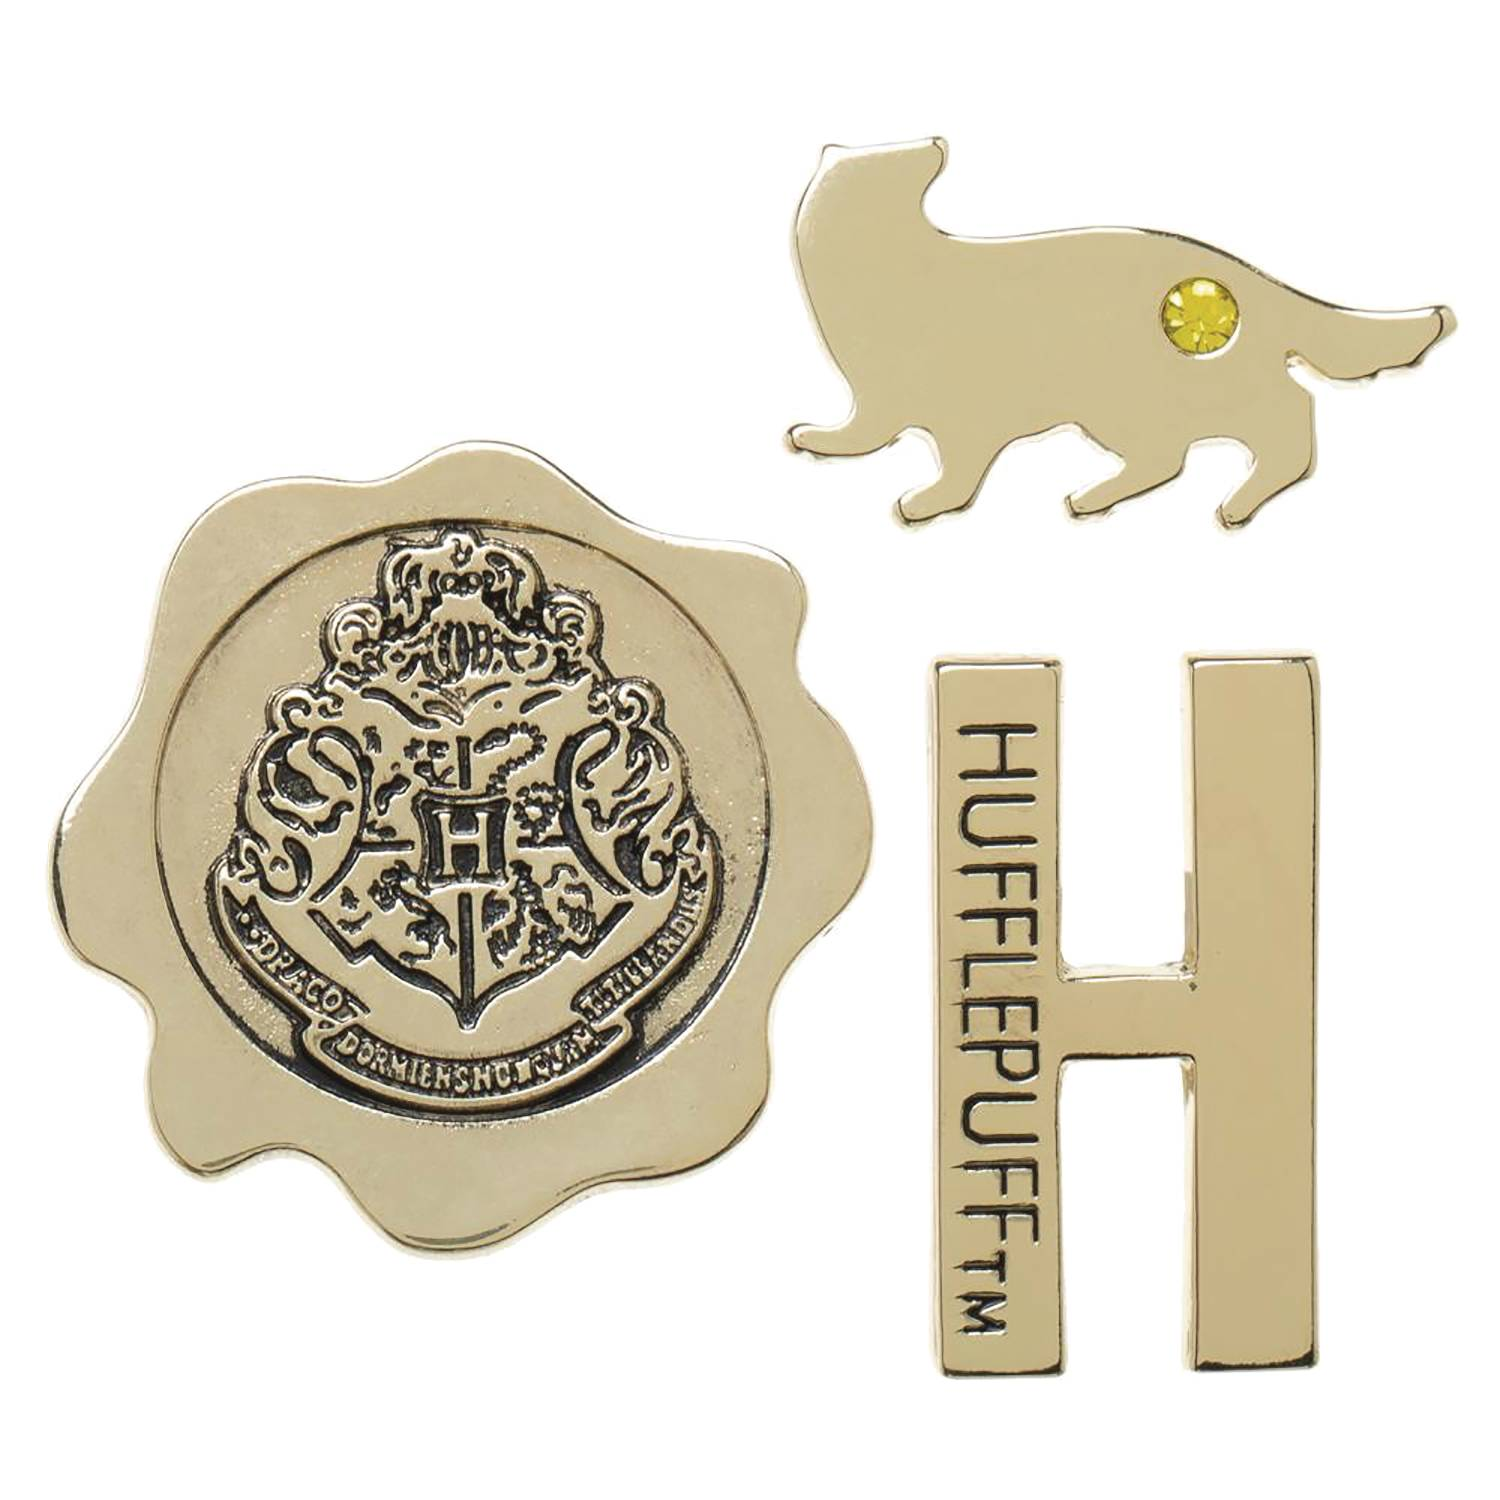 HARRY POTTER HOGWARTS HOUSE HUFFLEPUFF 3PC LAPEL PIN SET